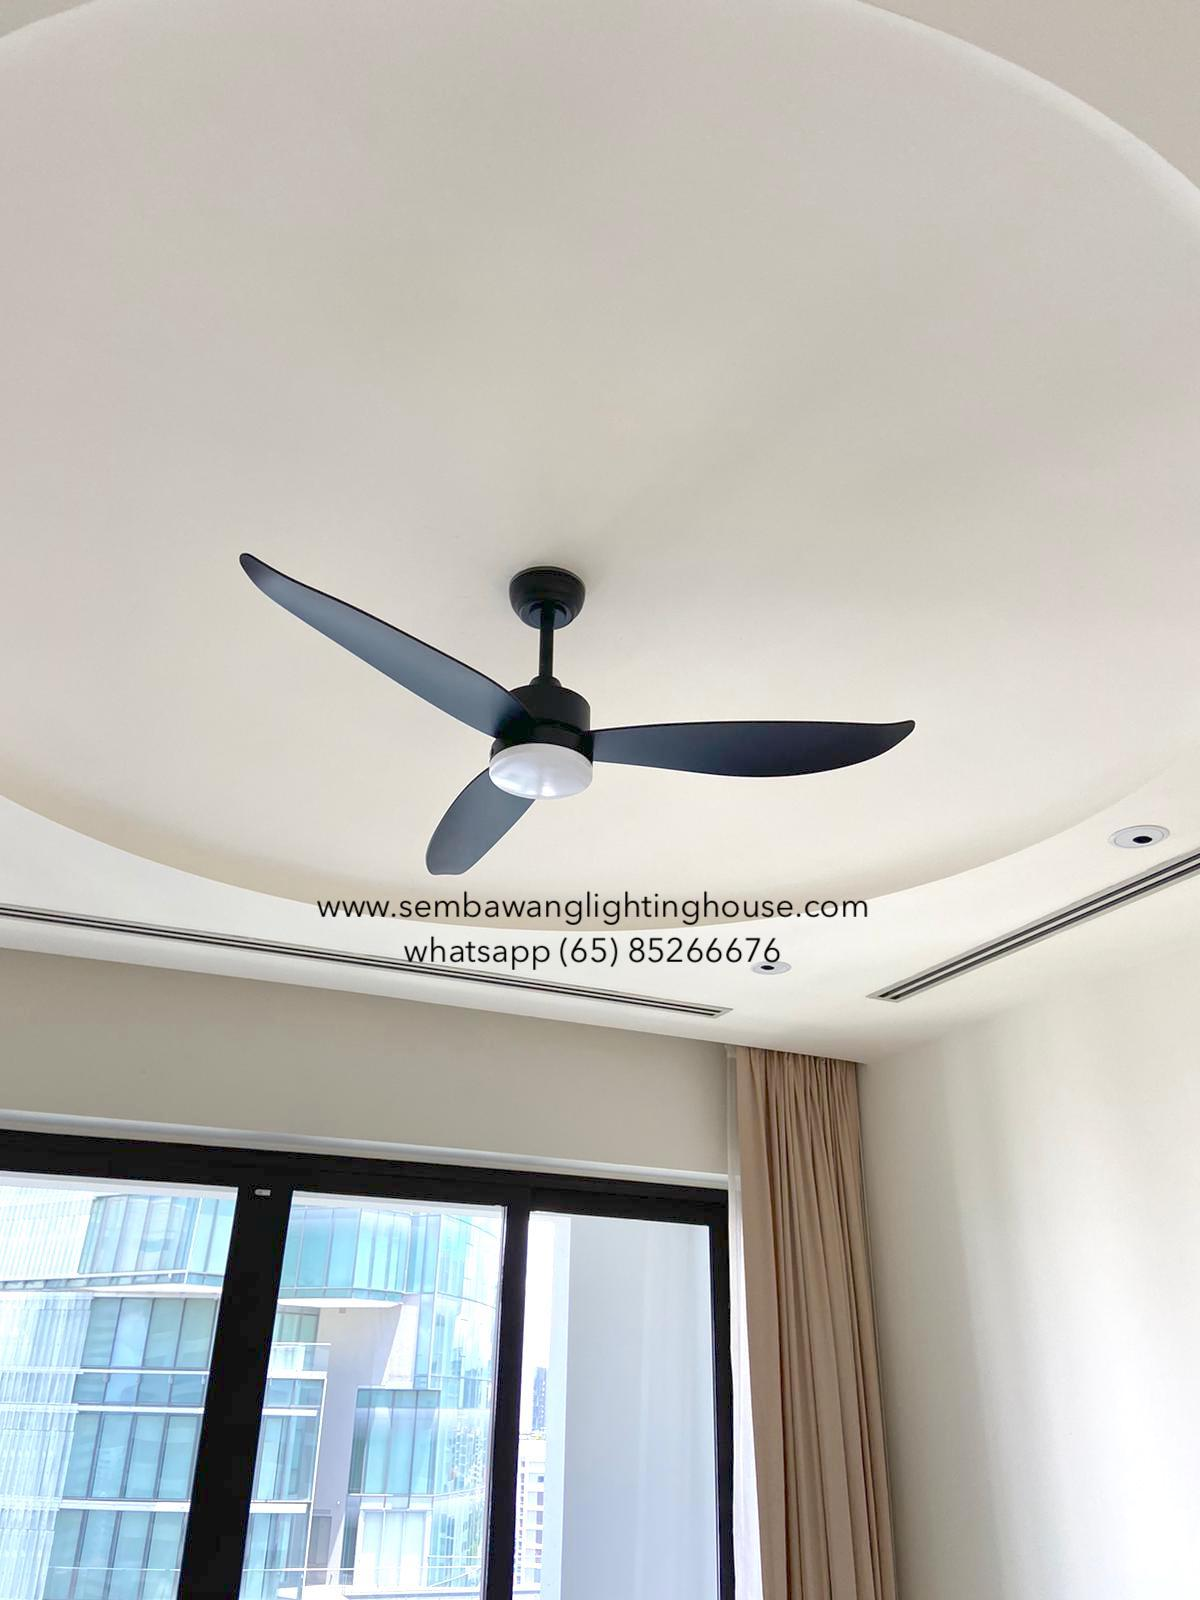 bestar-razor-black-ceiling-fan-sample-sembawang-lighting-house-11.jpeg